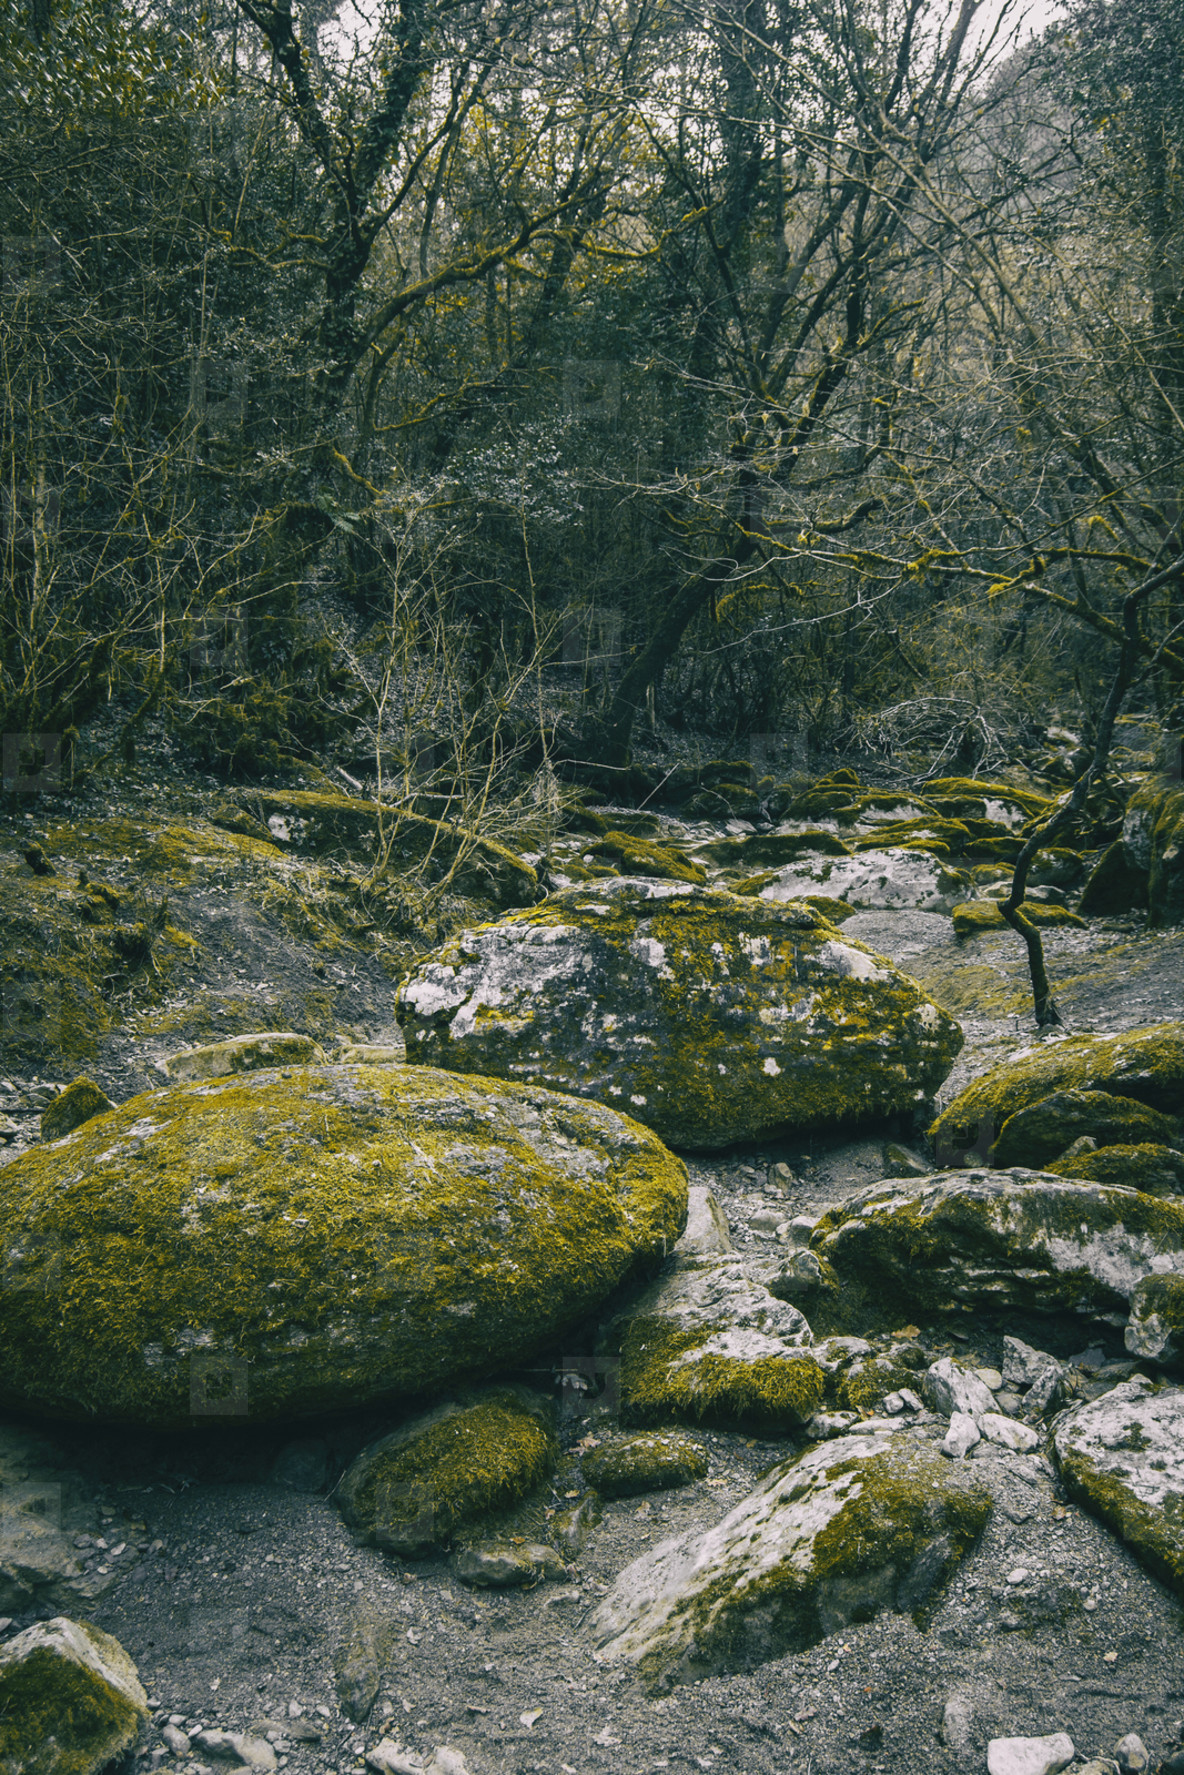 Large stone path with green moss in the middle of the forest